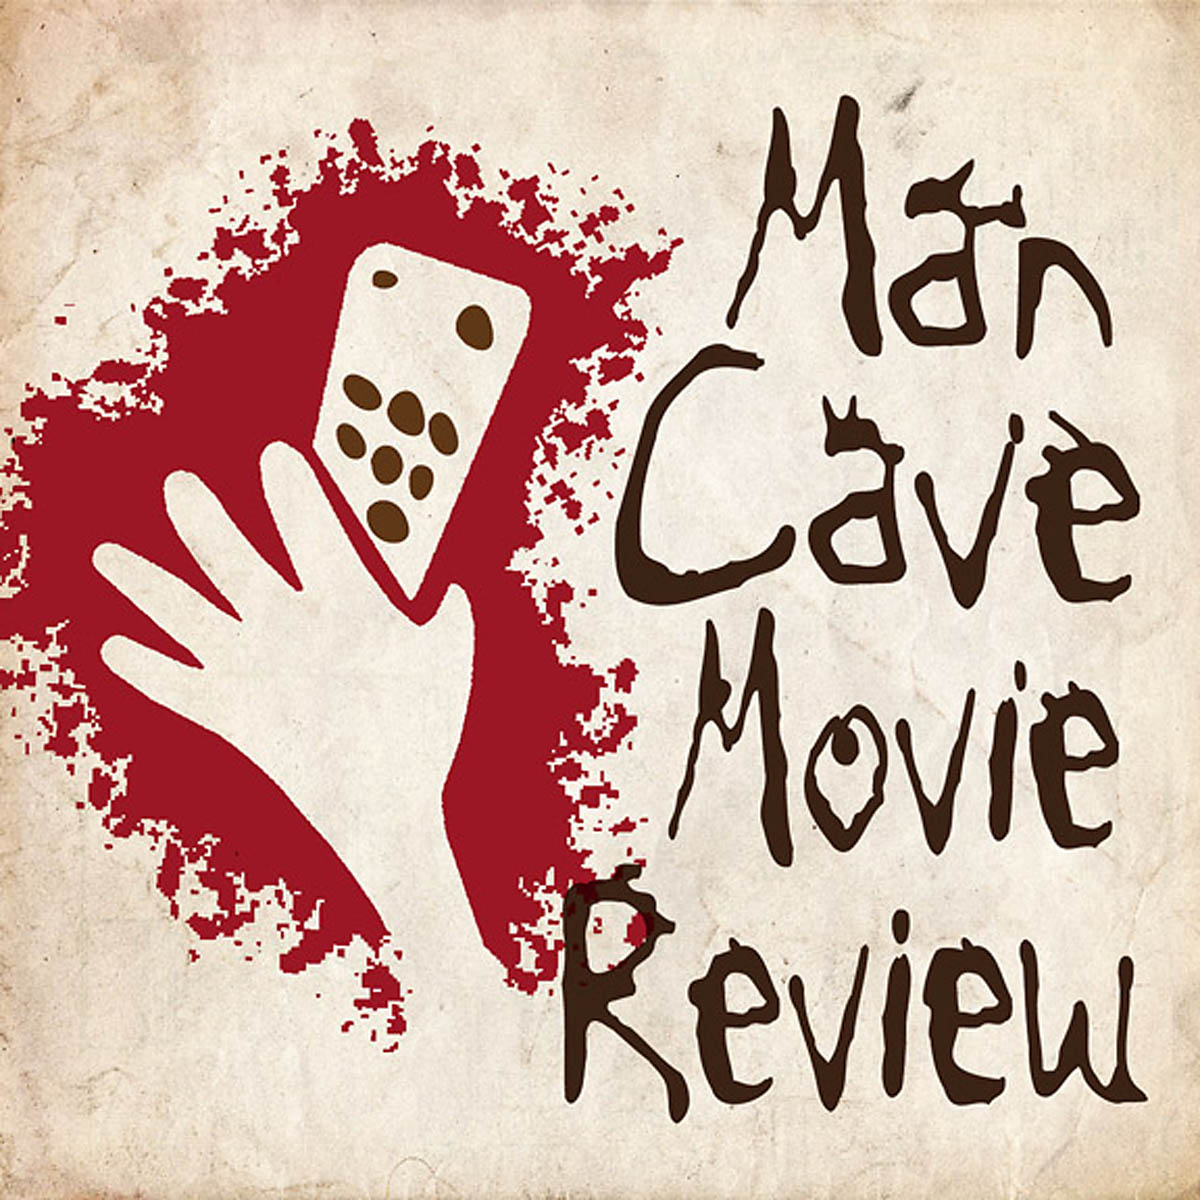 The Mancave Movie Review Podcast